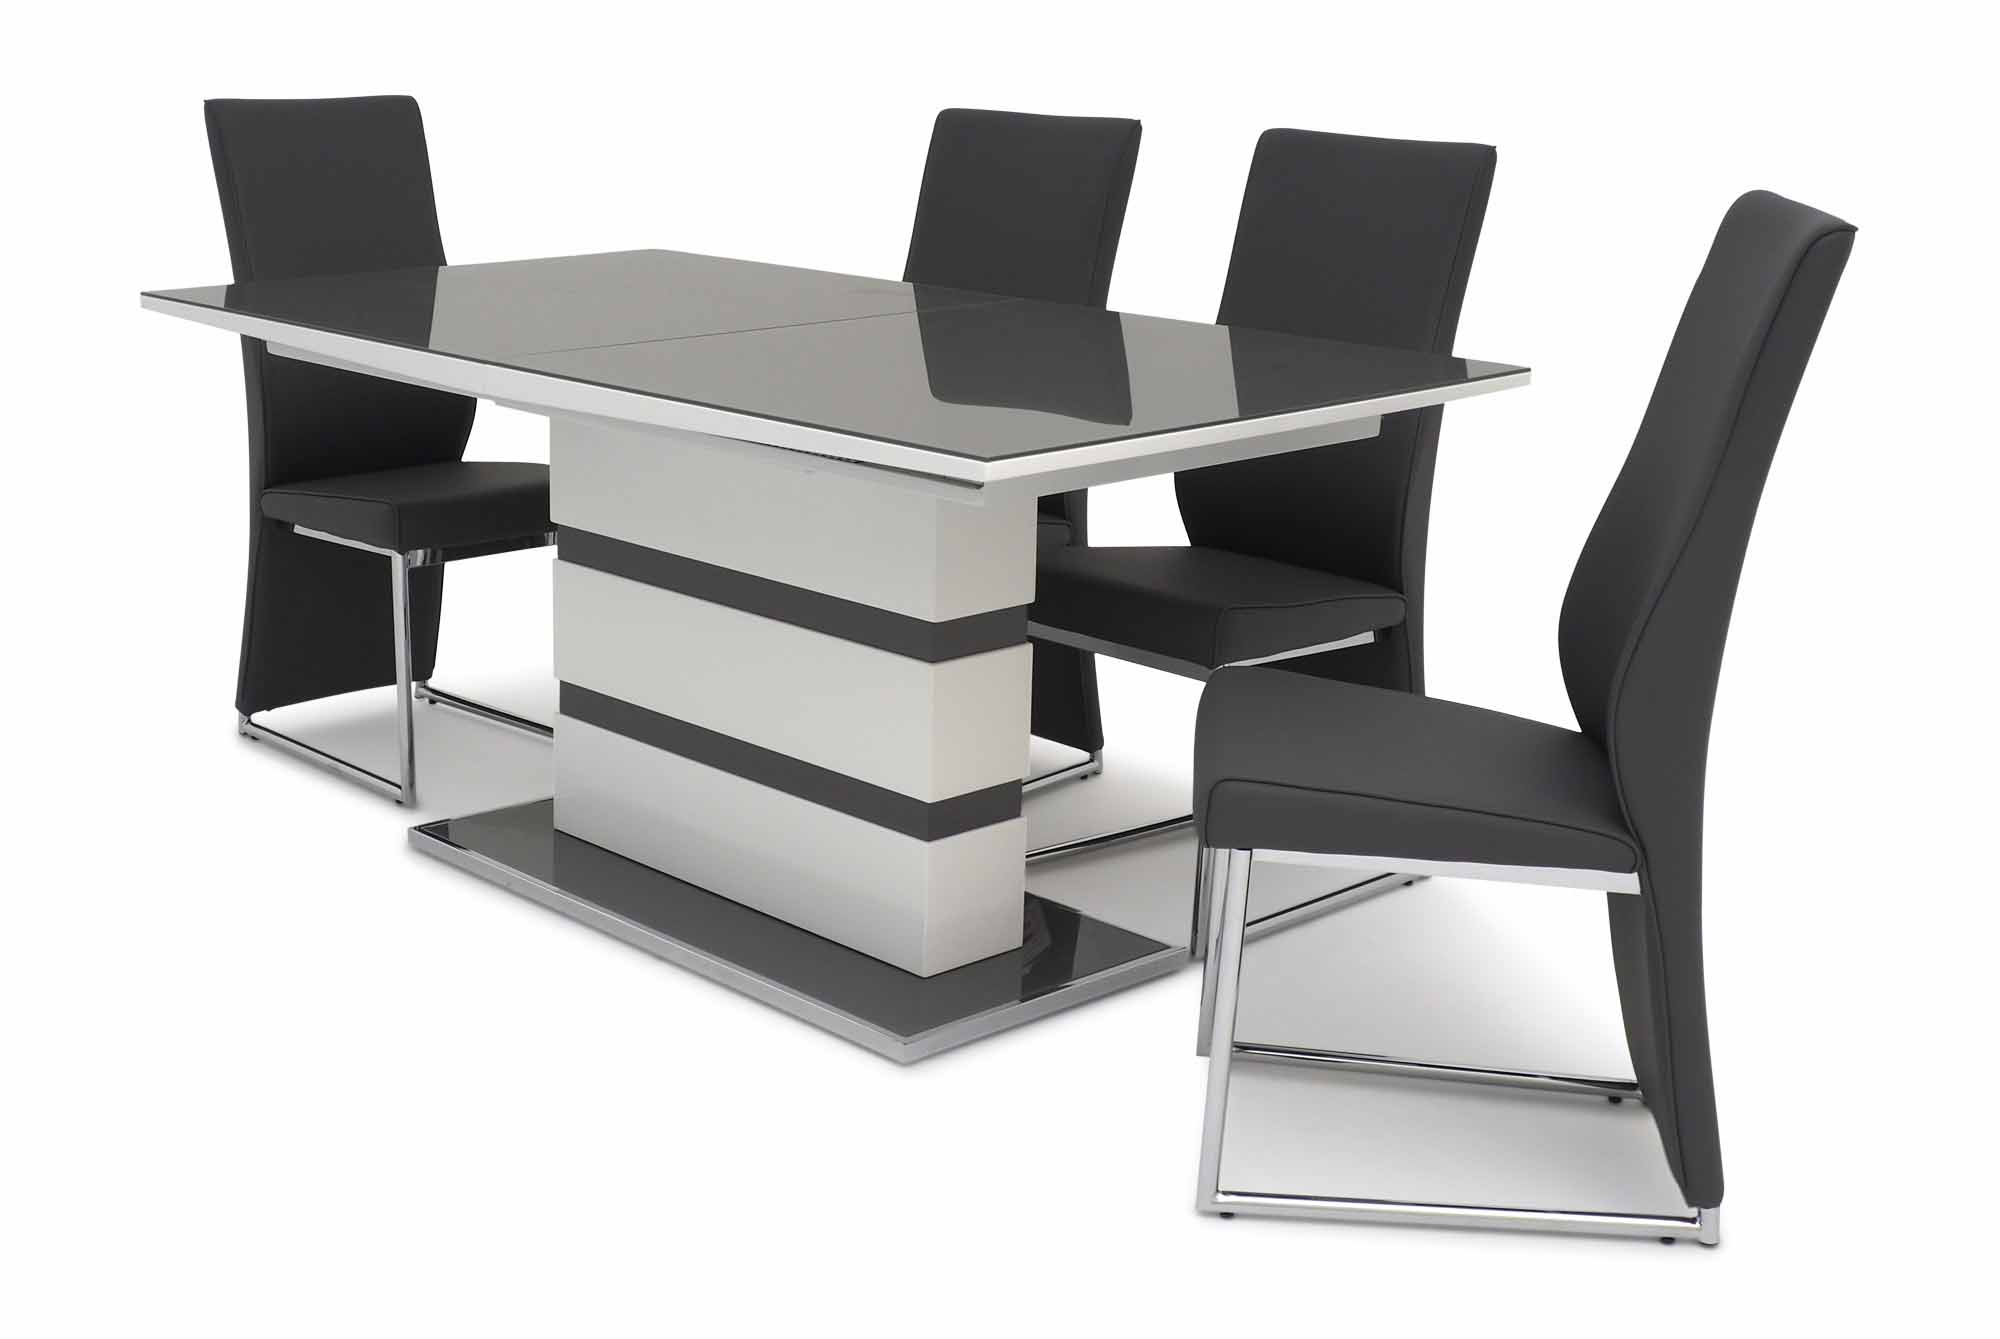 https://www.firstfurniture.co.uk/pub/media/catalog/product/a/r/armano_table_remo_chair_grey_close_1_side.jpg